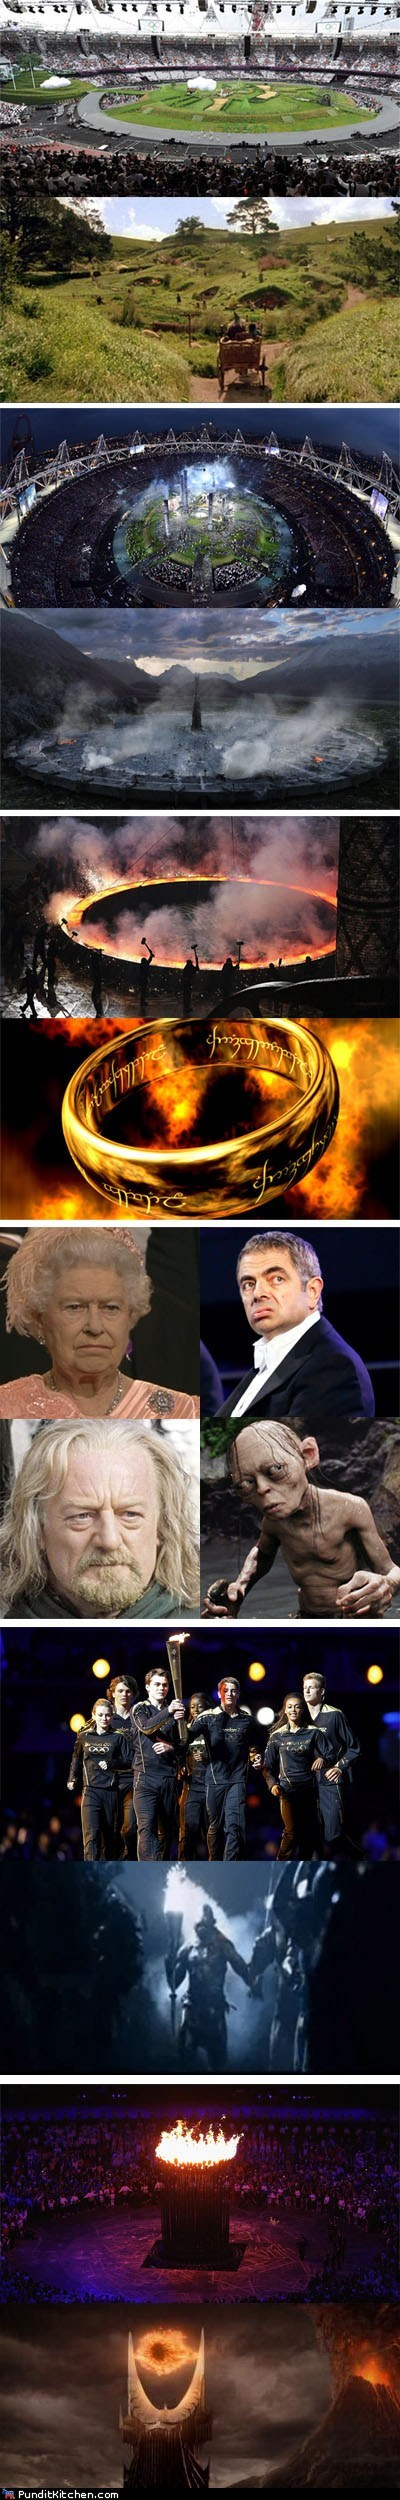 geek London Lord of the Rings olympics political pictures - 6469244672